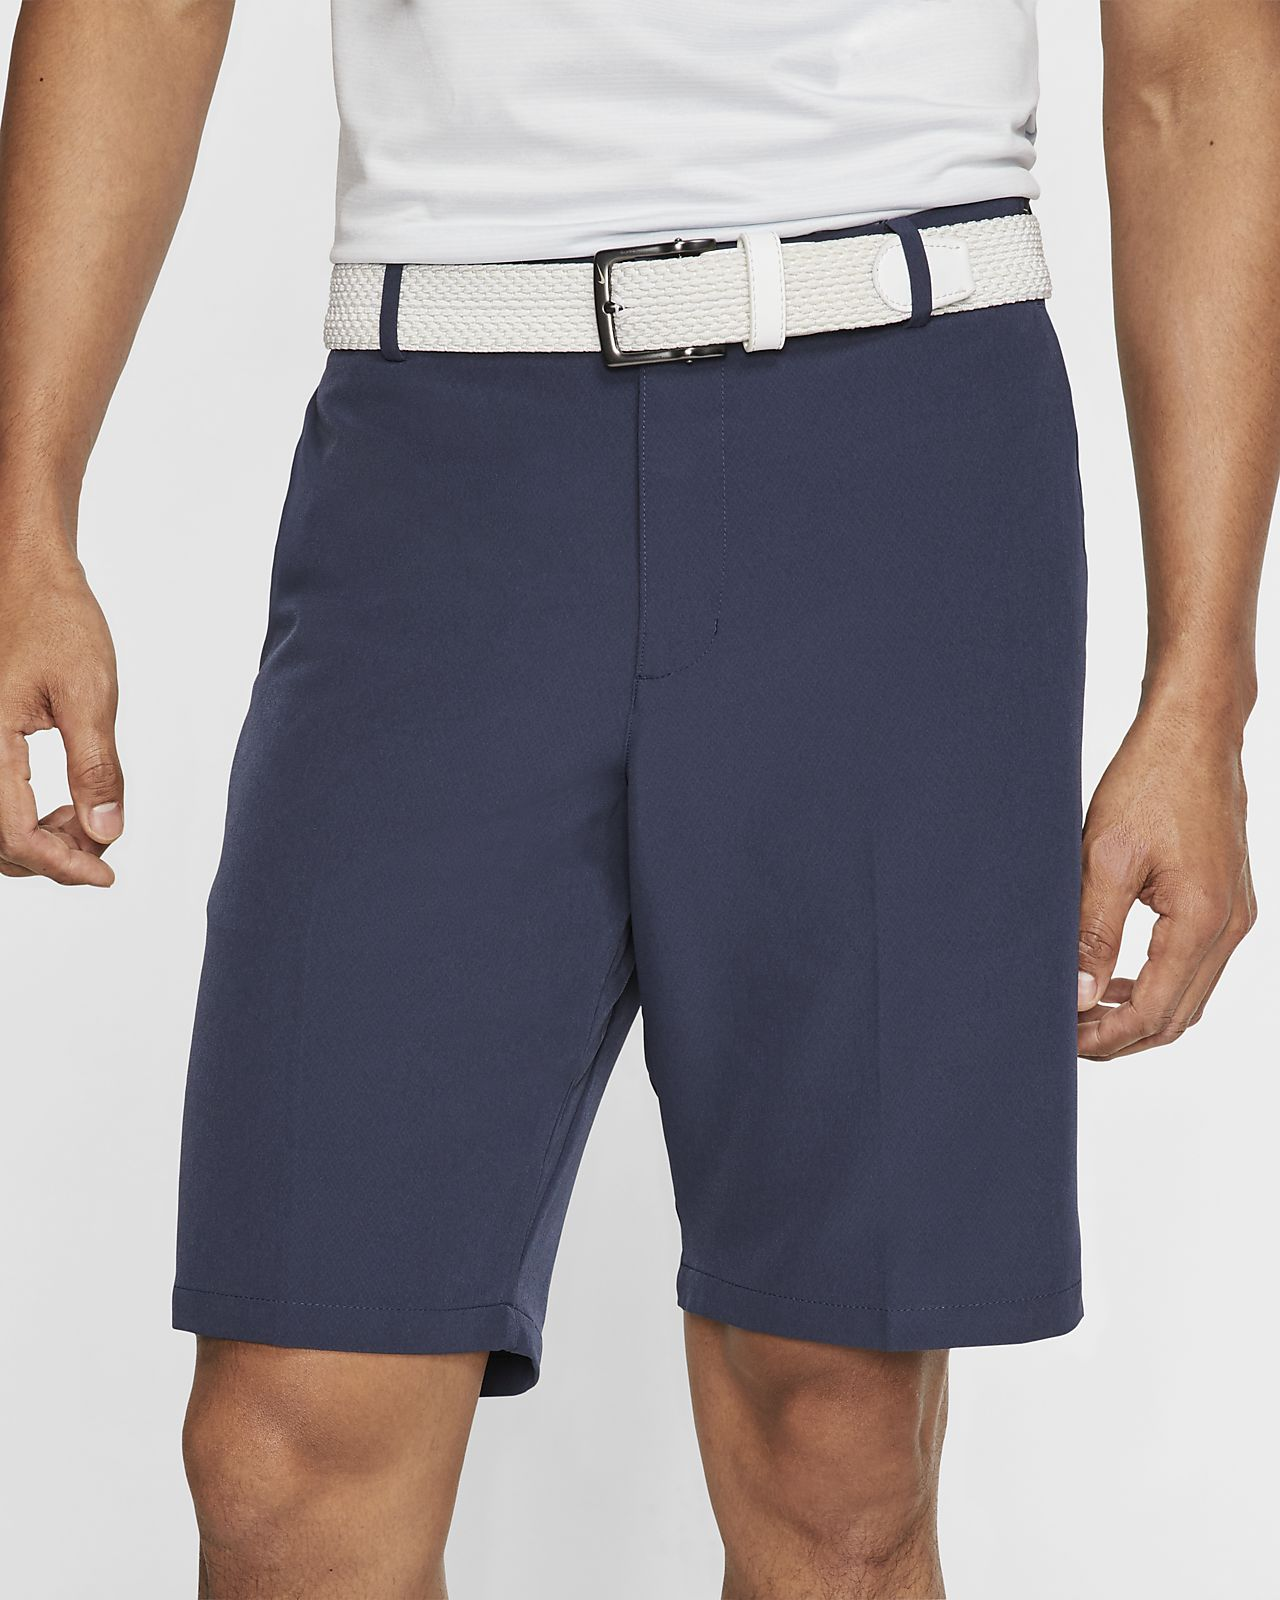 ec309a4d Nike Flex Men's Slim Fit Golf Shorts